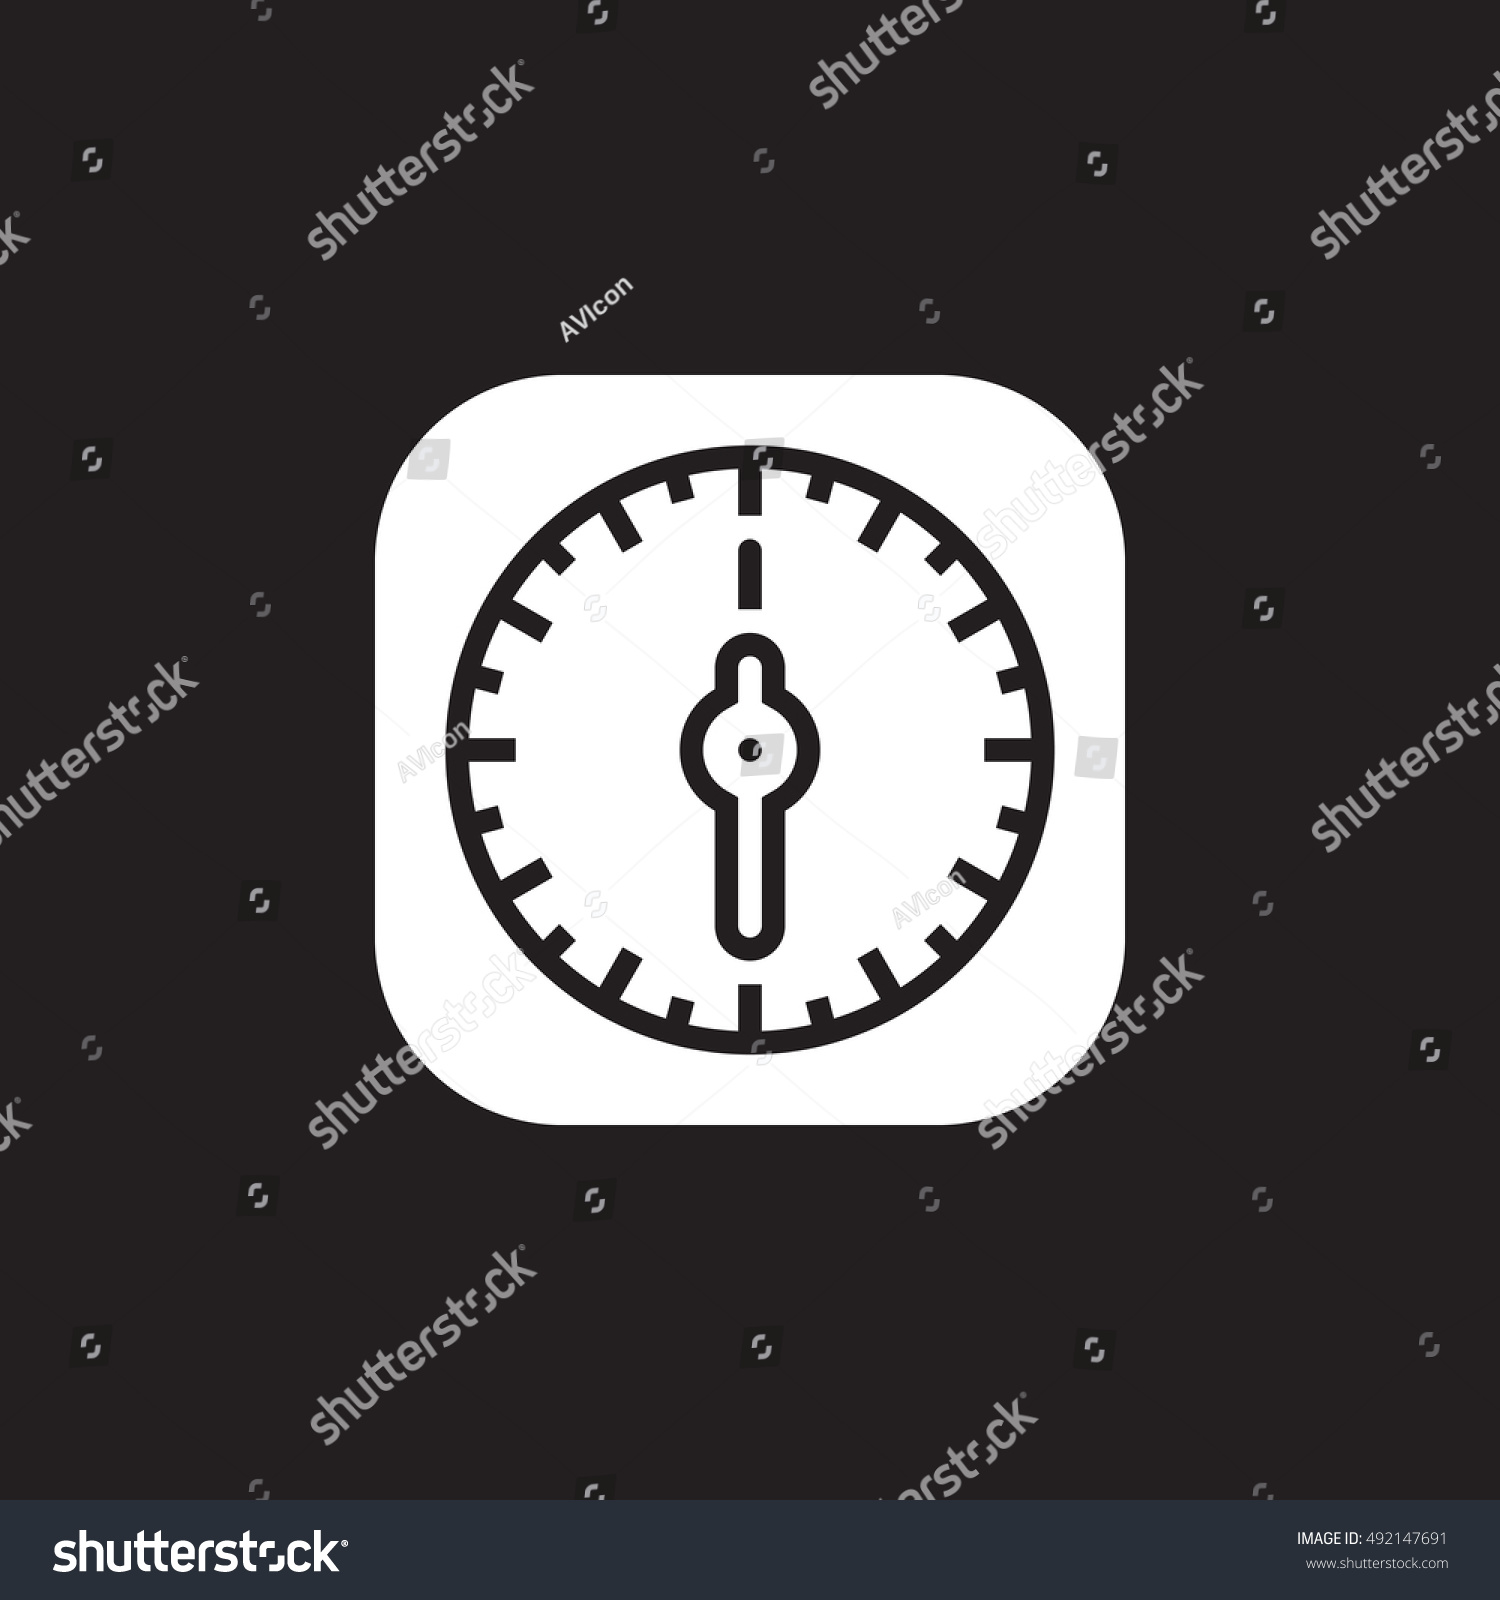 Kitchen Timer Icon Vector Solid Flat Stock Vector 492147691 ...